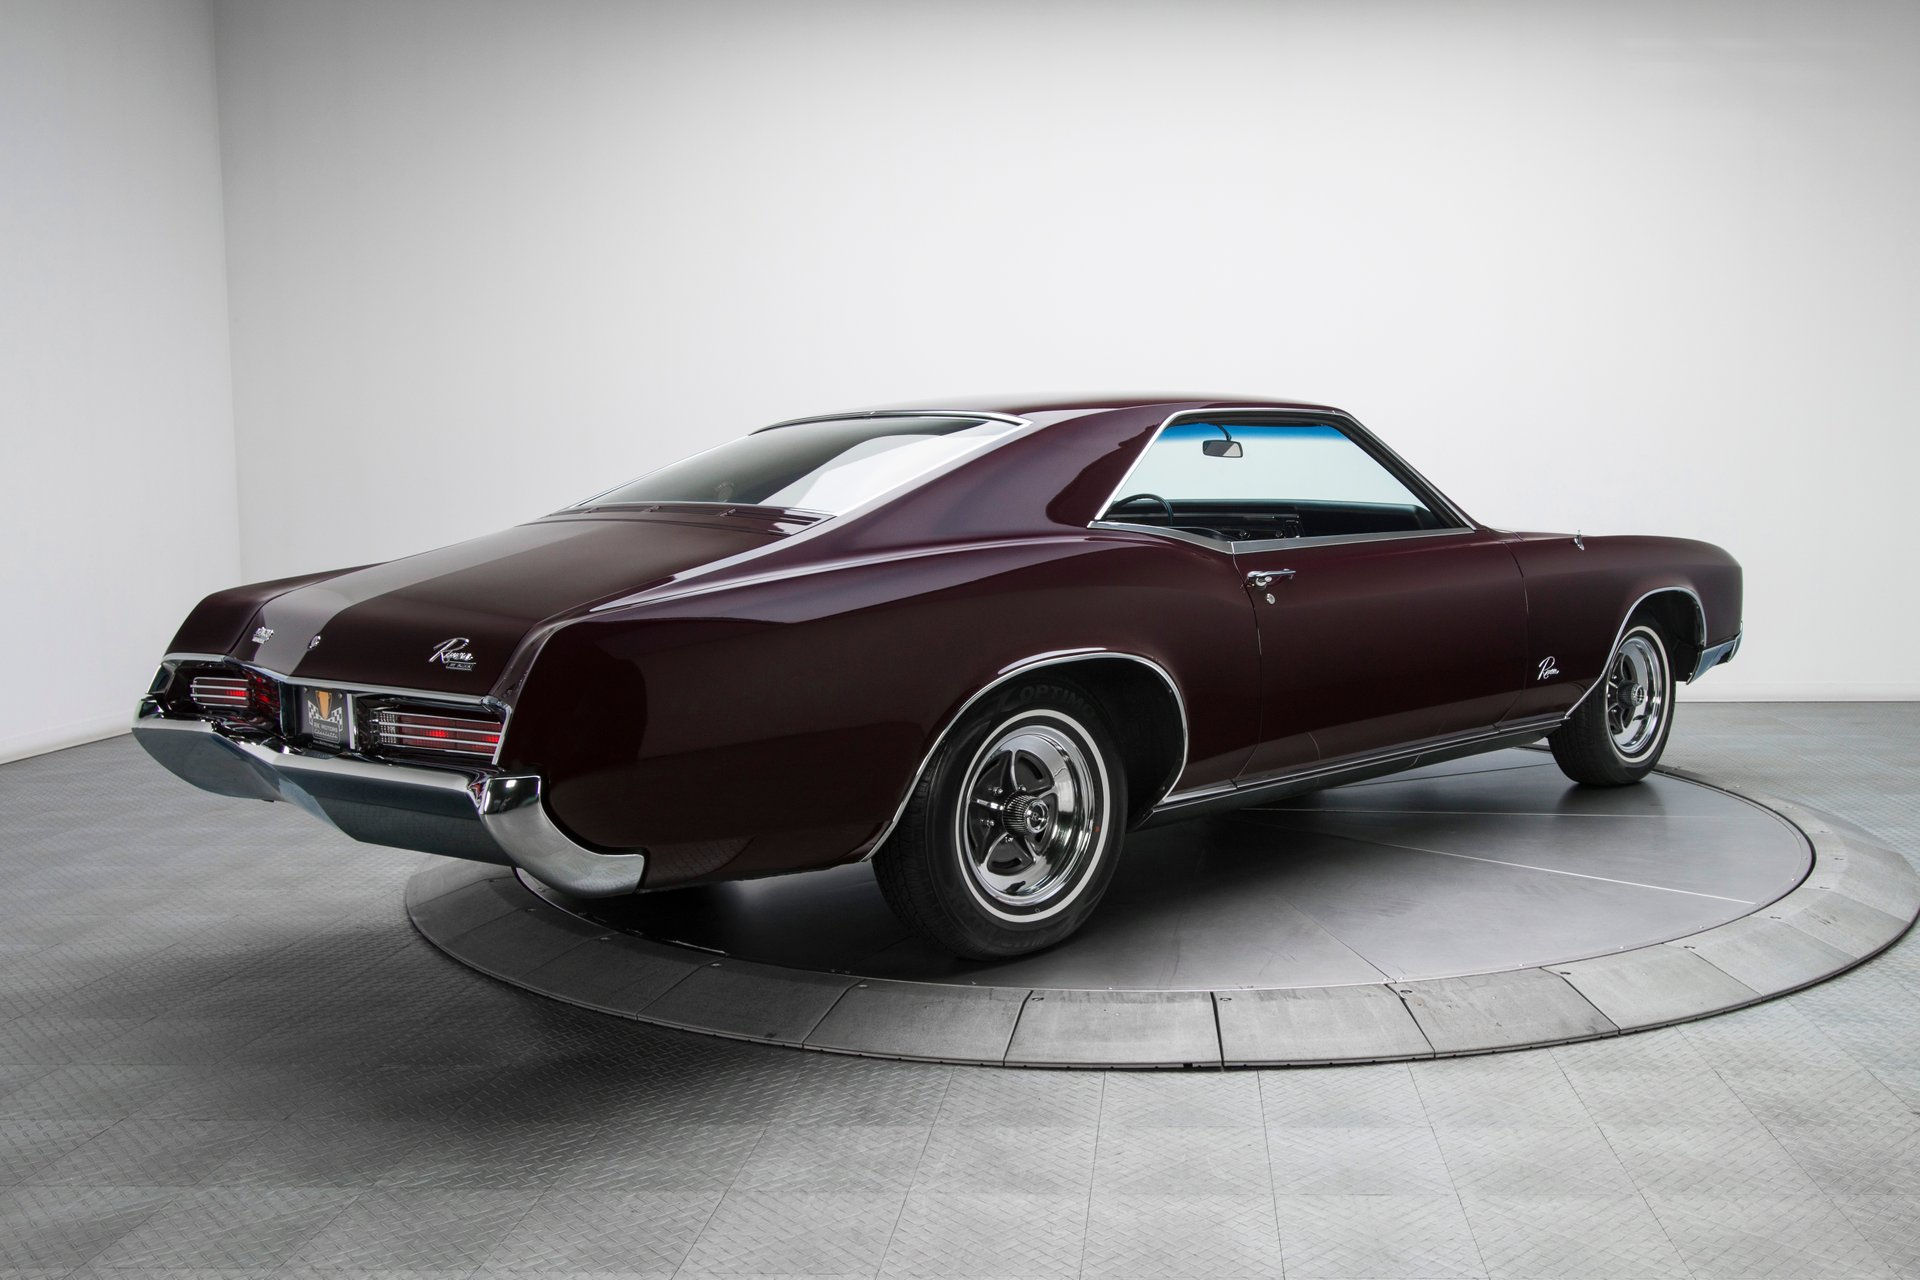 135350 1967 Buick Riviera RK Motors Classic Cars for Sale